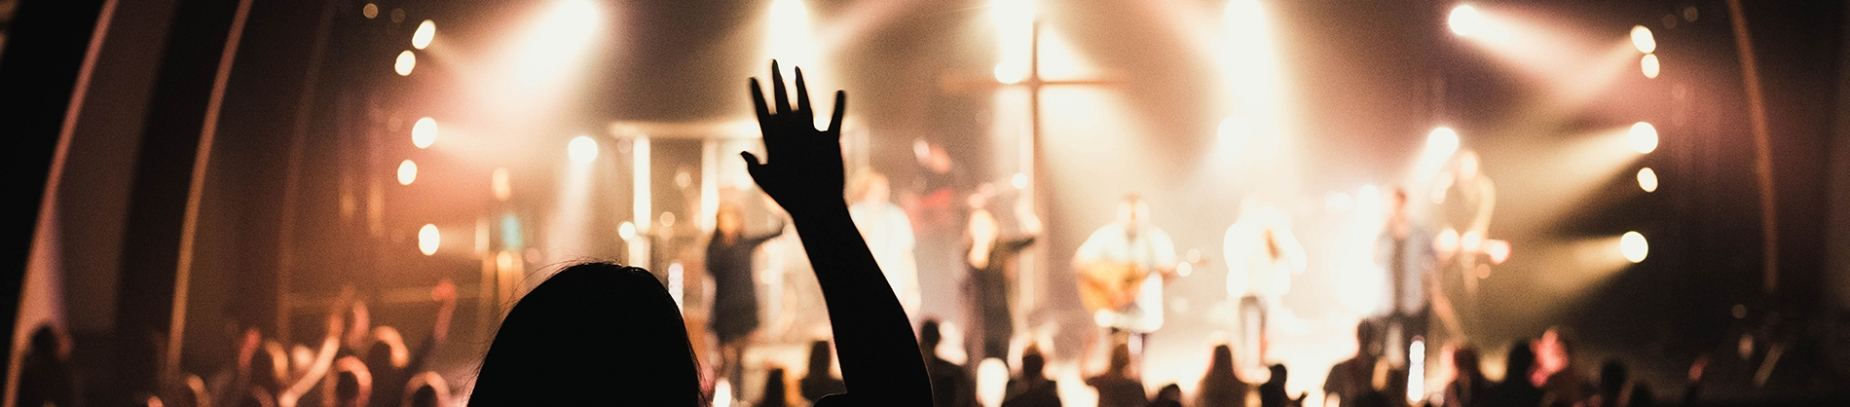 A church worship team on stage and a women with her hand in the air